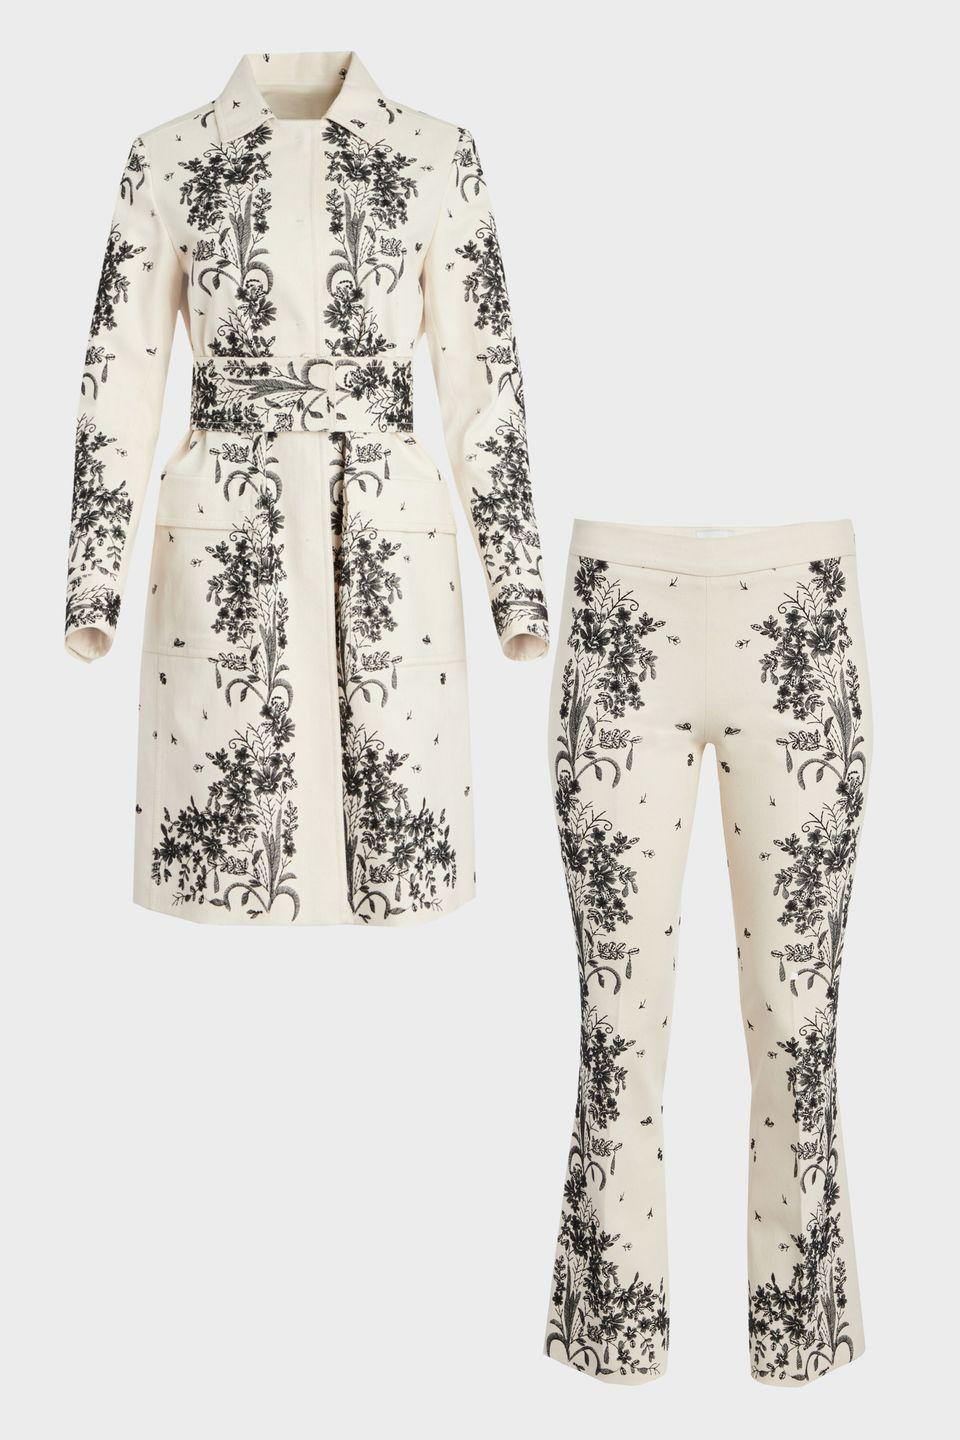 "<p>For civil ceremonies, day-after brunches, and rehearsal dinners alike, tap into prints, pops of color, and coats rather than jackets. Trust us: you're more likely to wear not-so-ivory and layering pieces again and again, long after your wedding weekend.</p><p><em>Embroidered coat, $8,200, <a href=""https://www.giambattistavalli.com/en/eshop/ready-to-wear/readytowear_coats/ivory-gabardine-embroidered-coat/"" rel=""nofollow noopener"" target=""_blank"" data-ylk=""slk:giambattistavalli.com"" class=""link rapid-noclick-resp"">giambattistavalli.com</a></em> <a class=""link rapid-noclick-resp"" href=""https://www.giambattistavalli.com/en/eshop/ready-to-wear/readytowear_coats/ivory-gabardine-embroidered-coat/"" rel=""nofollow noopener"" target=""_blank"" data-ylk=""slk:SHOP"">SHOP</a> </p><p><em>Cropped trouser, $2,750, <a href=""https://www.giambattistavalli.com/en/eshop/trianon/trianon_skirts_pants/gabardine-embroidered-pants/"" rel=""nofollow noopener"" target=""_blank"" data-ylk=""slk:giambattistavalli.com"" class=""link rapid-noclick-resp"">giambattistavalli.com</a></em> <a class=""link rapid-noclick-resp"" href=""https://www.giambattistavalli.com/en/eshop/trianon/trianon_skirts_pants/gabardine-embroidered-pants/"" rel=""nofollow noopener"" target=""_blank"" data-ylk=""slk:SHOP"">SHOP</a></p>"